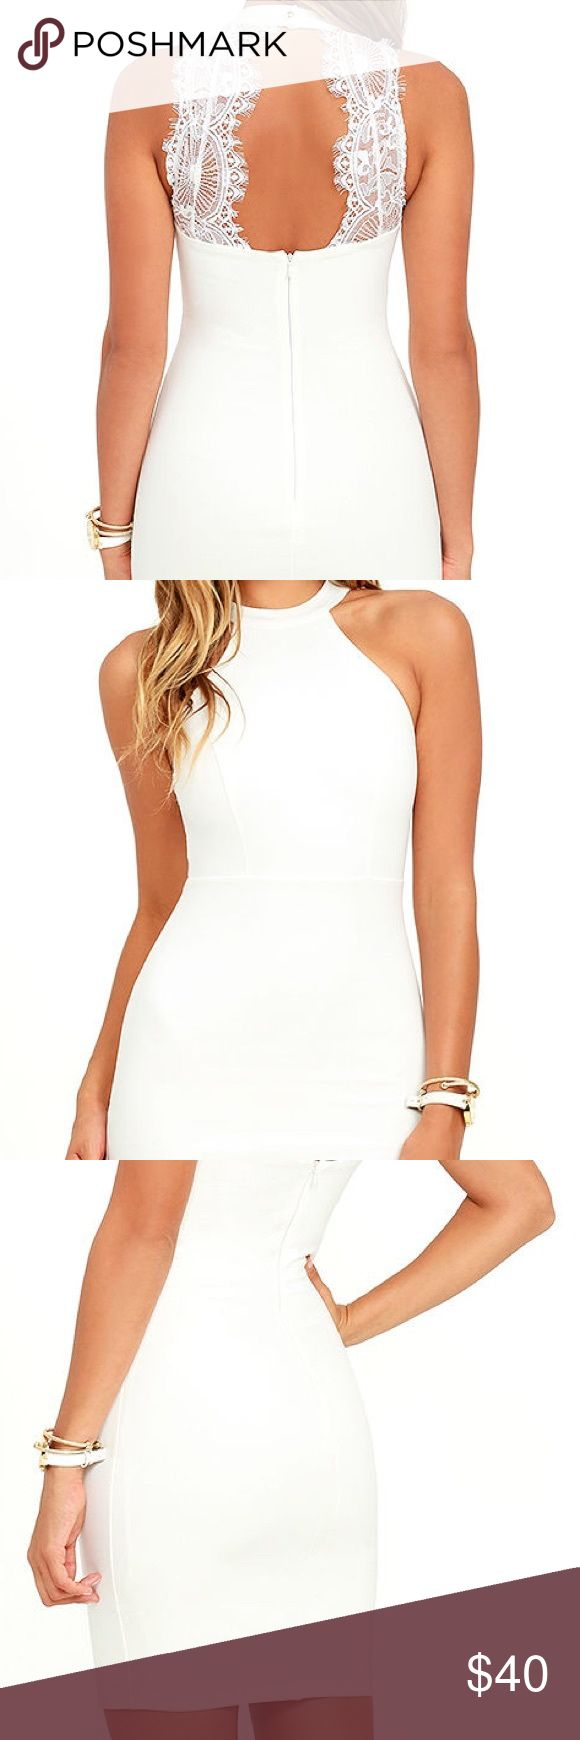 """""""Endlessly Alluring White Lace Bodycon Dress"""" White body con dress. Stretchy fabric. Halter neckline. Fully lined. Mid thigh length.  *Never worn* Lulu's Dresses Mini"""